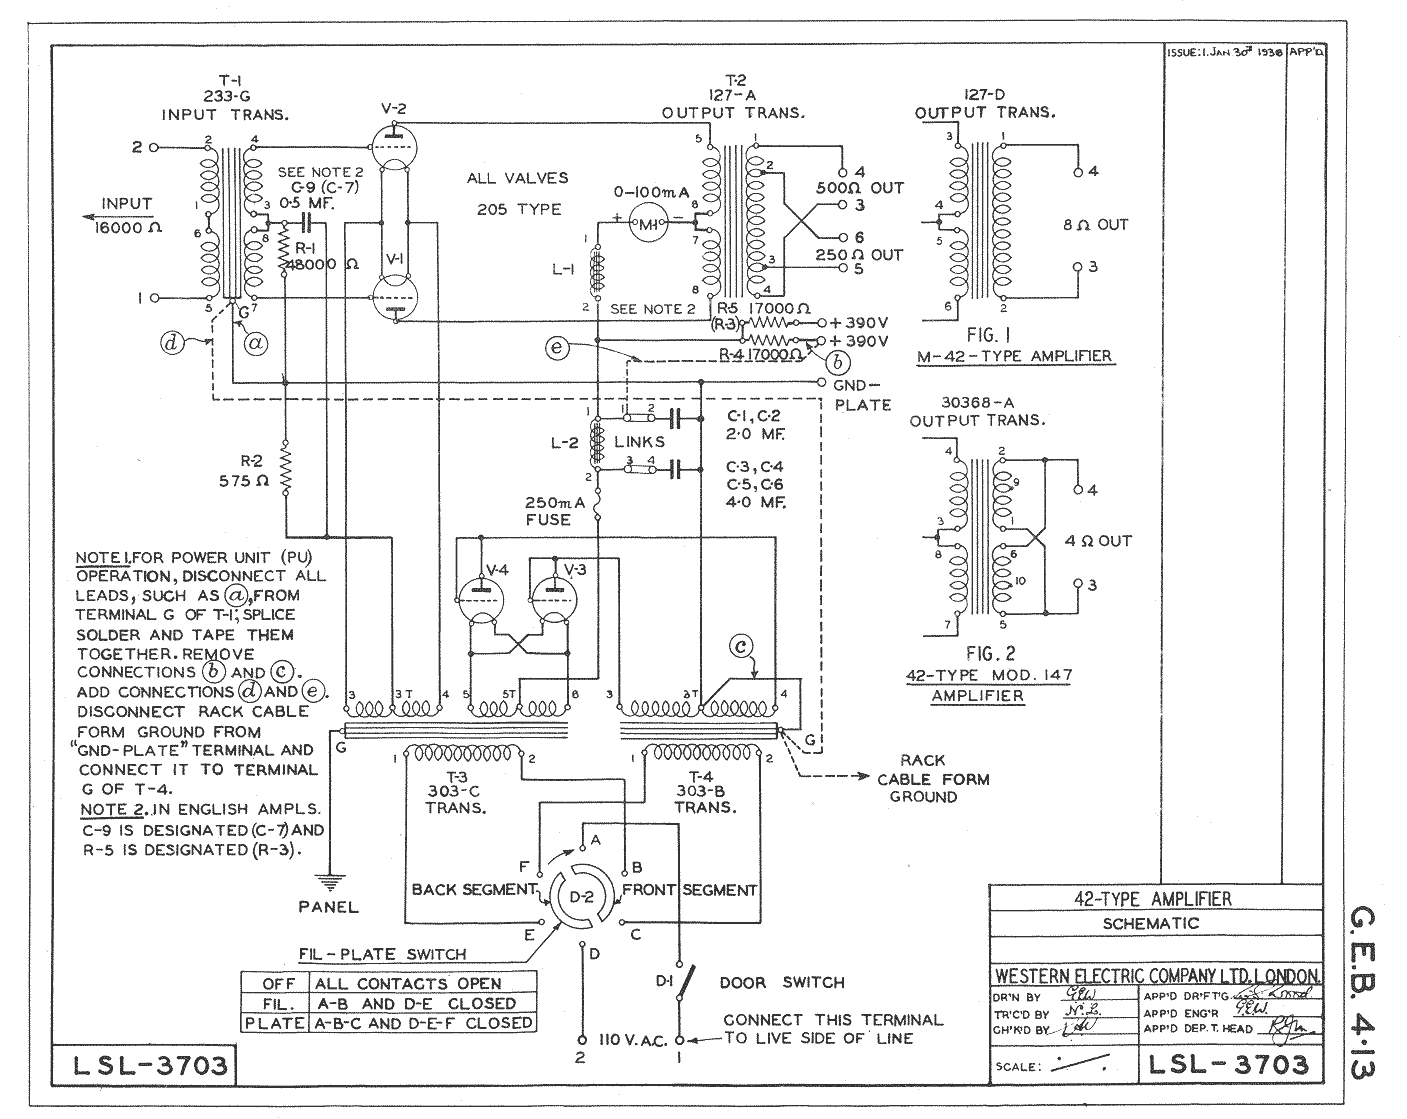 100 Amplifiers Part 1 1916 45 Lilienthal Engineering Speaker Microphone Circuit Diagrams Schematics Electronic Western Electric 42 Amplifier Original Schematic